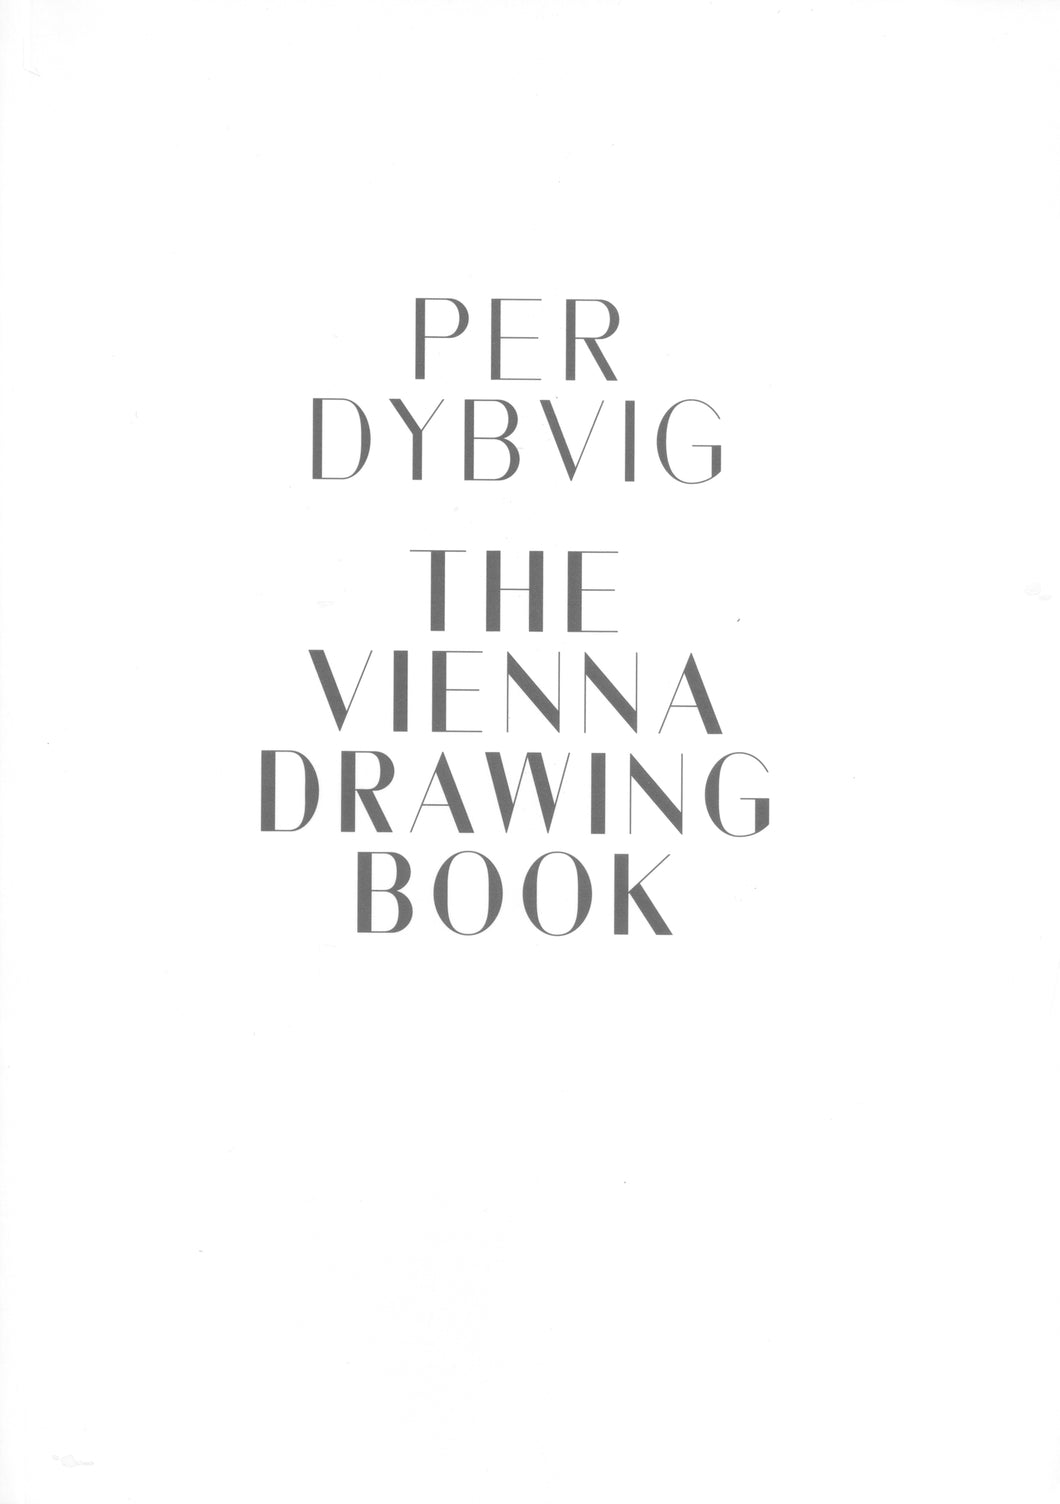 Per Dybvig, The Vienna Drawing Book